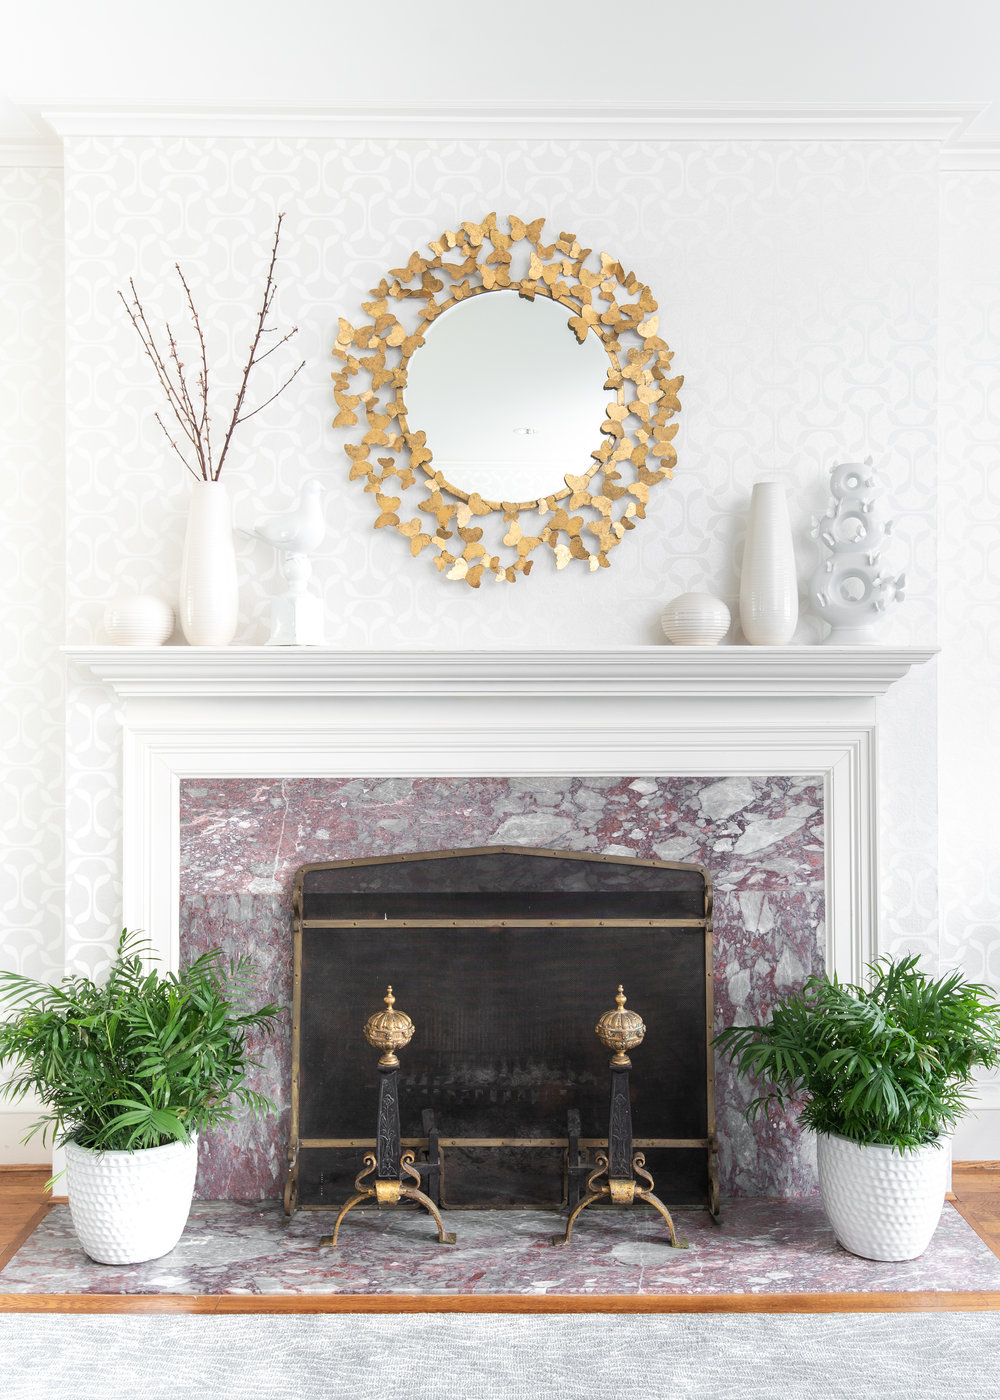 elegant-fireplace-mantle-all-white-decor-dc-interior-design-dmv-splendor-styling-mariella-cruzado.jpg